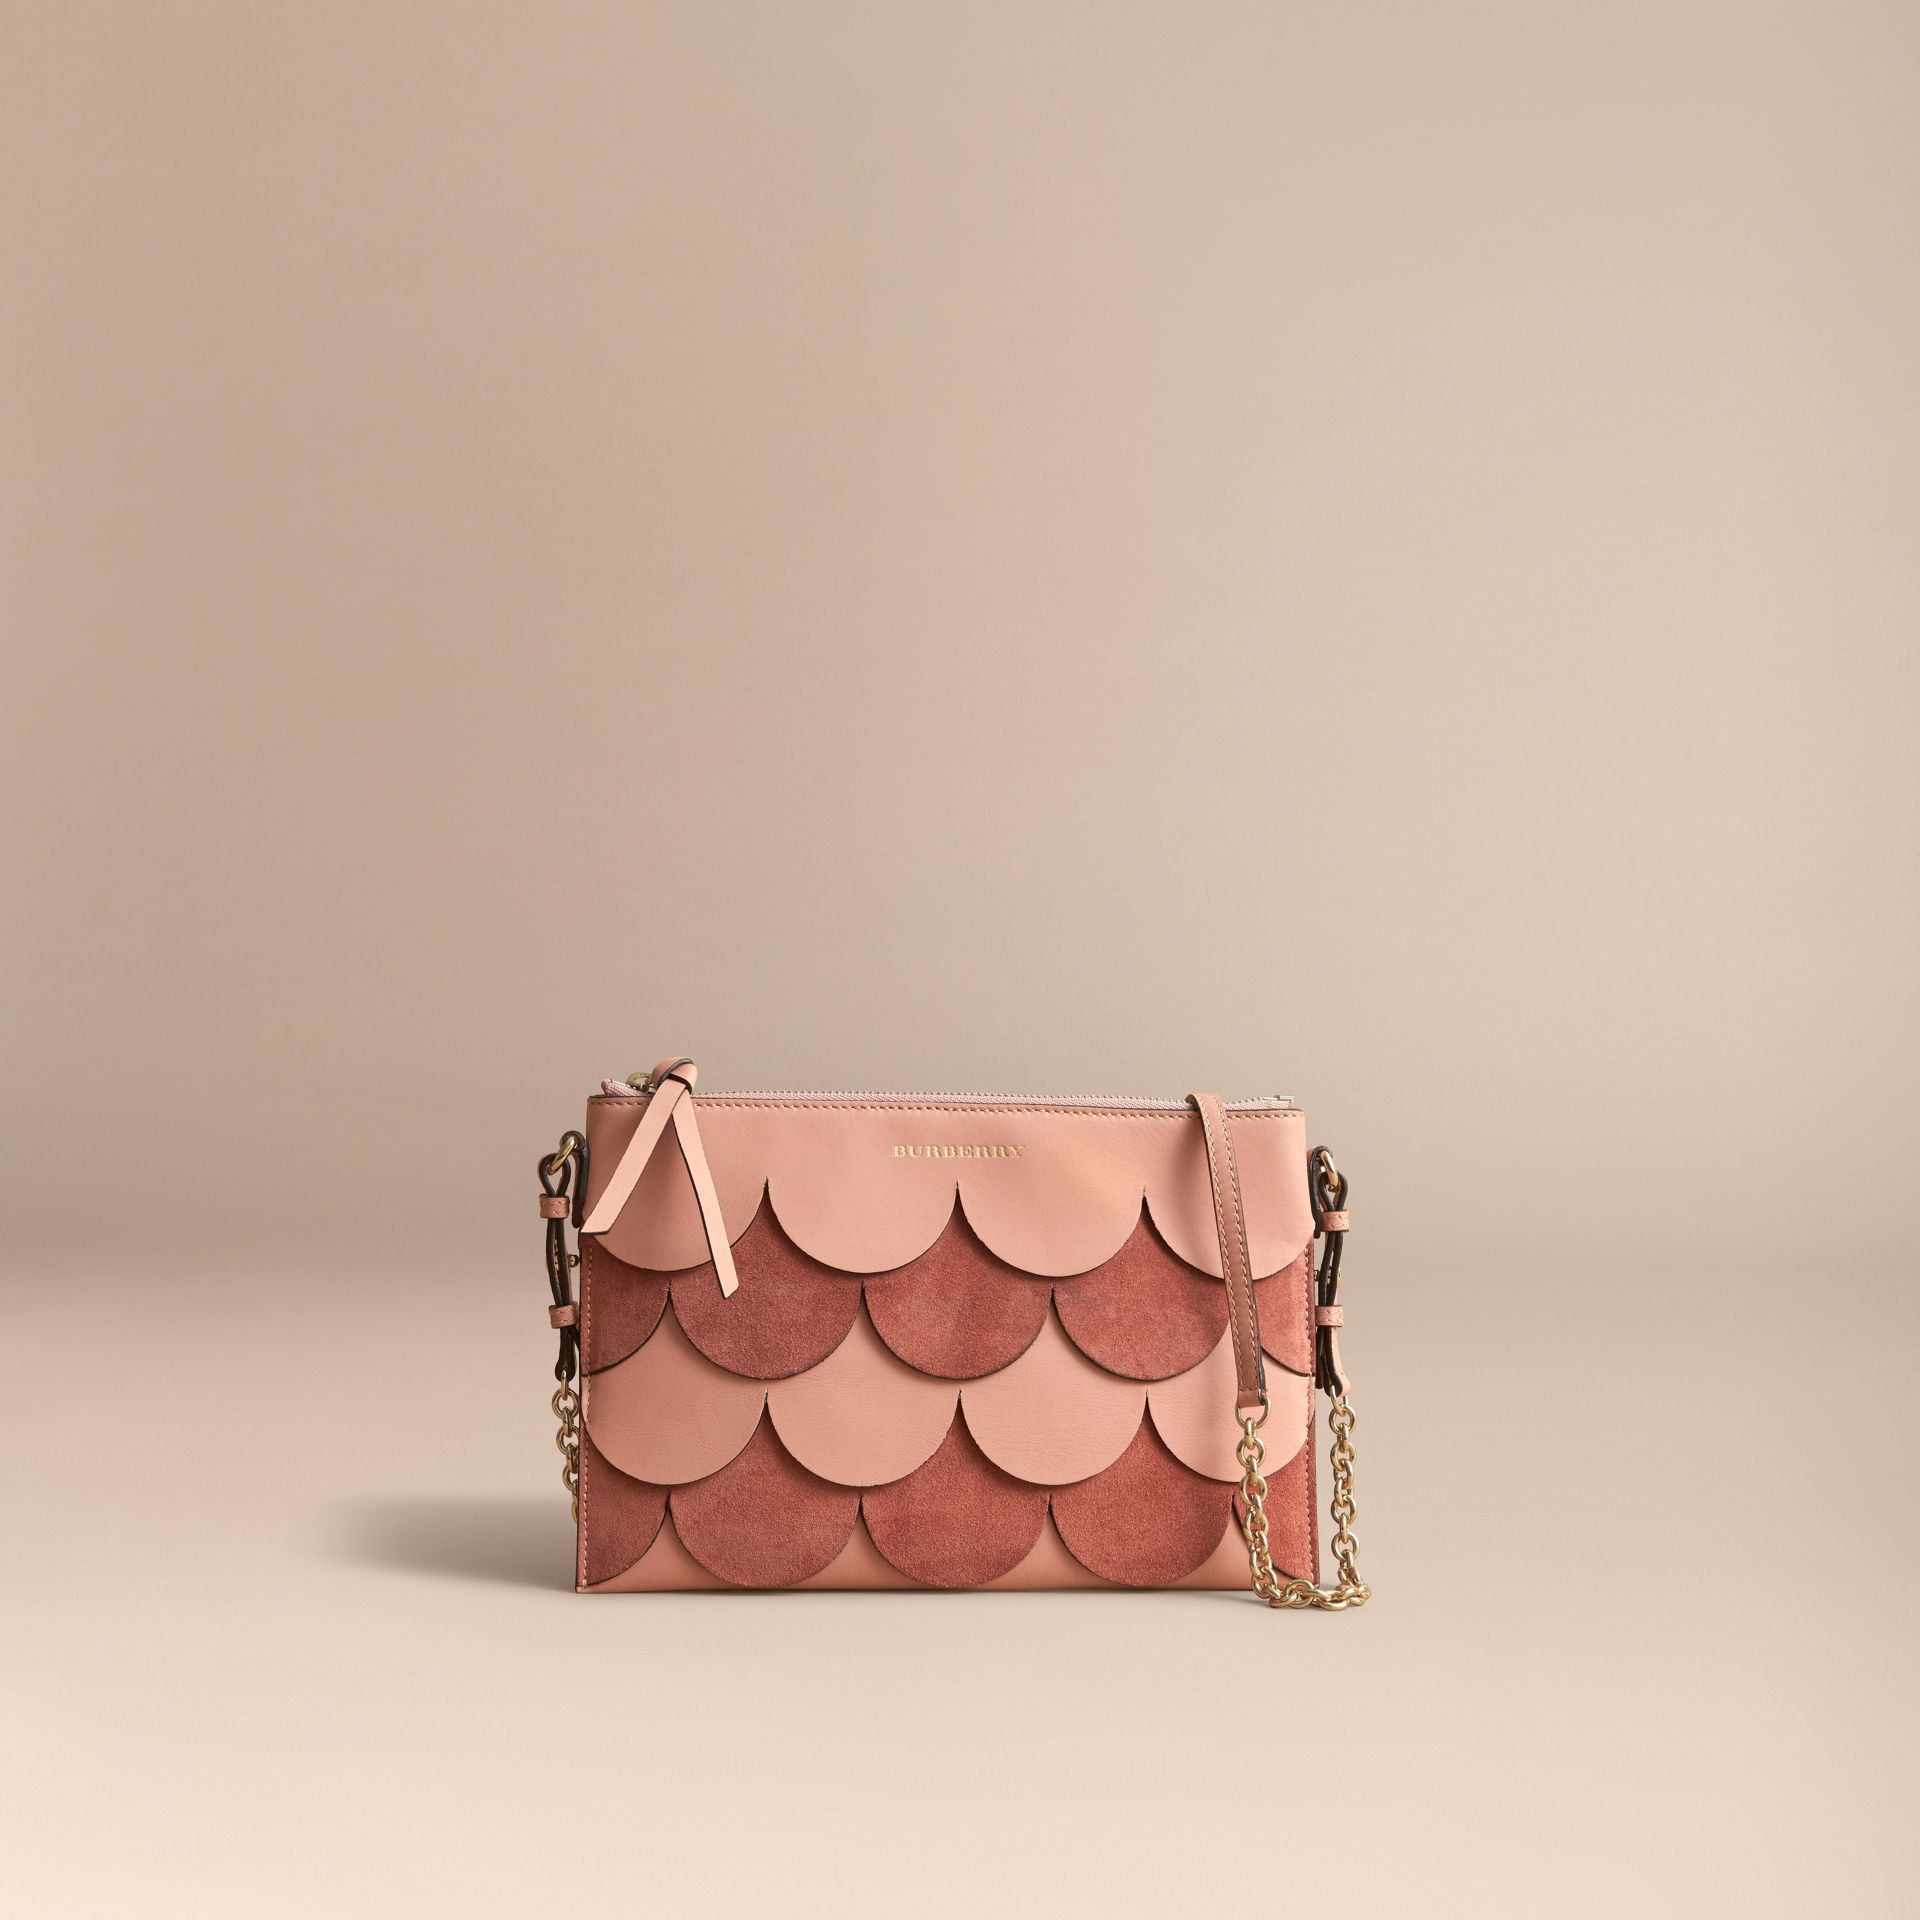 Two-tone Scalloped Leather and Suede Clutch Bag in Ash Rose - Women | Burberry Australia - gallery image 8